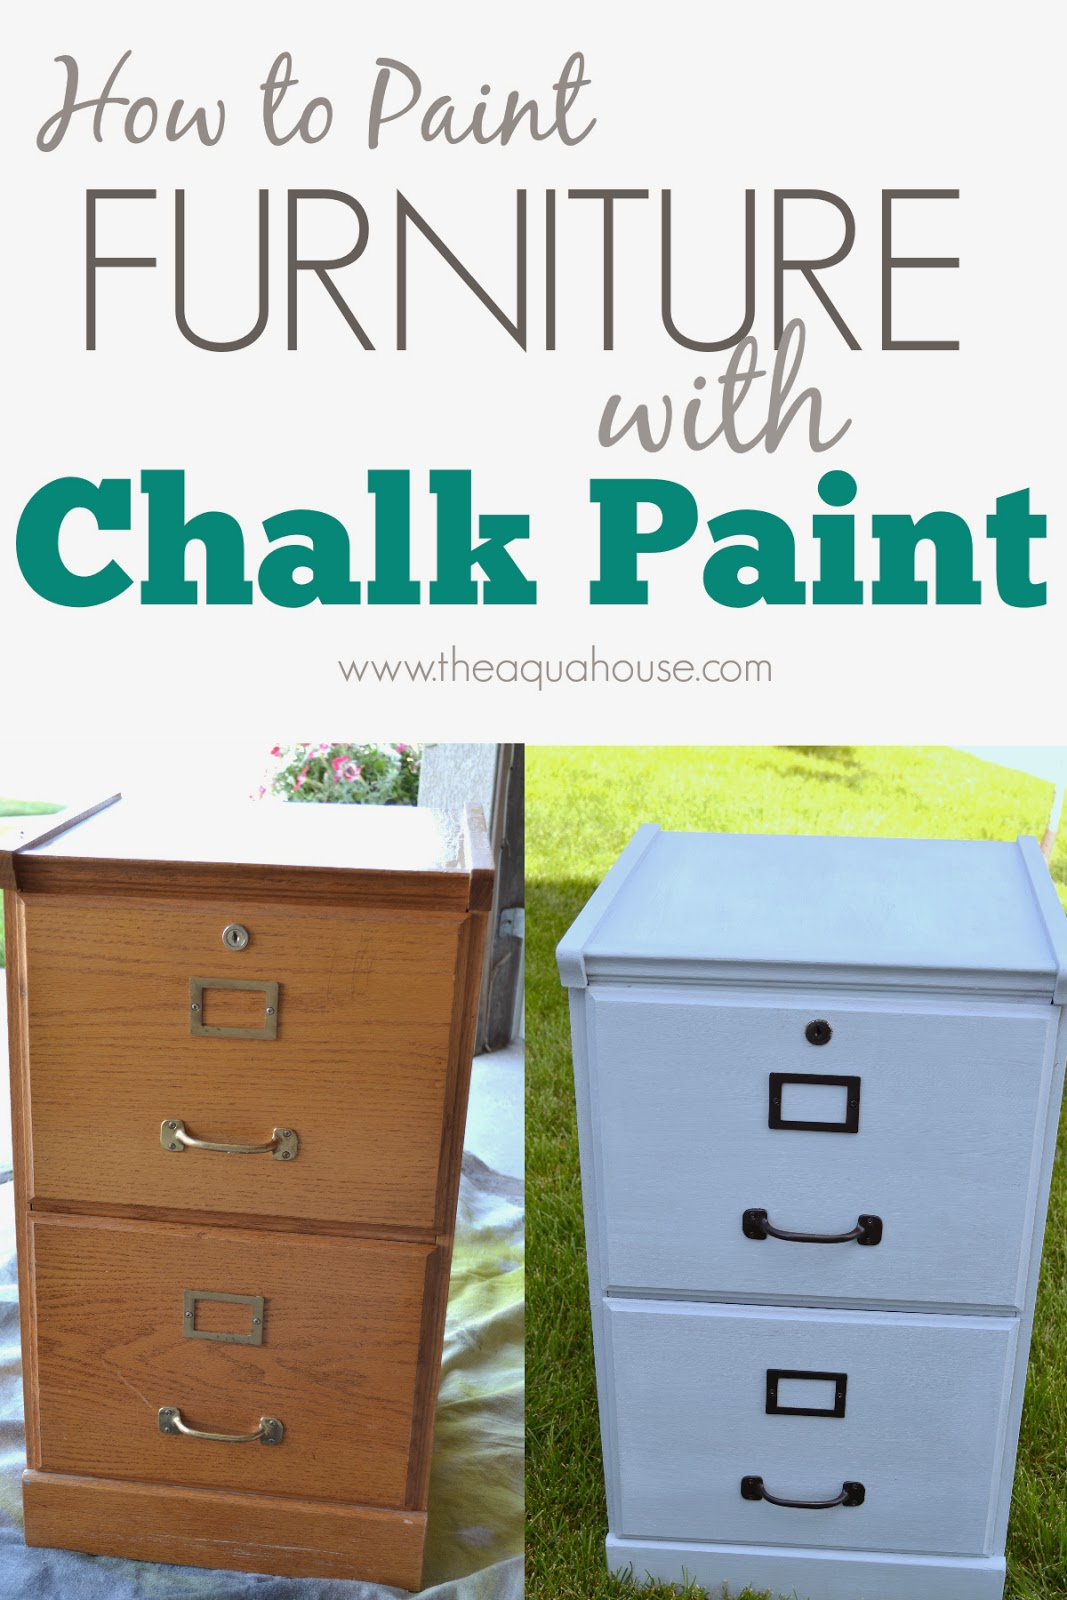 File Cabinet Paint The Aqua House How Paint Furniture With Chalk Paint